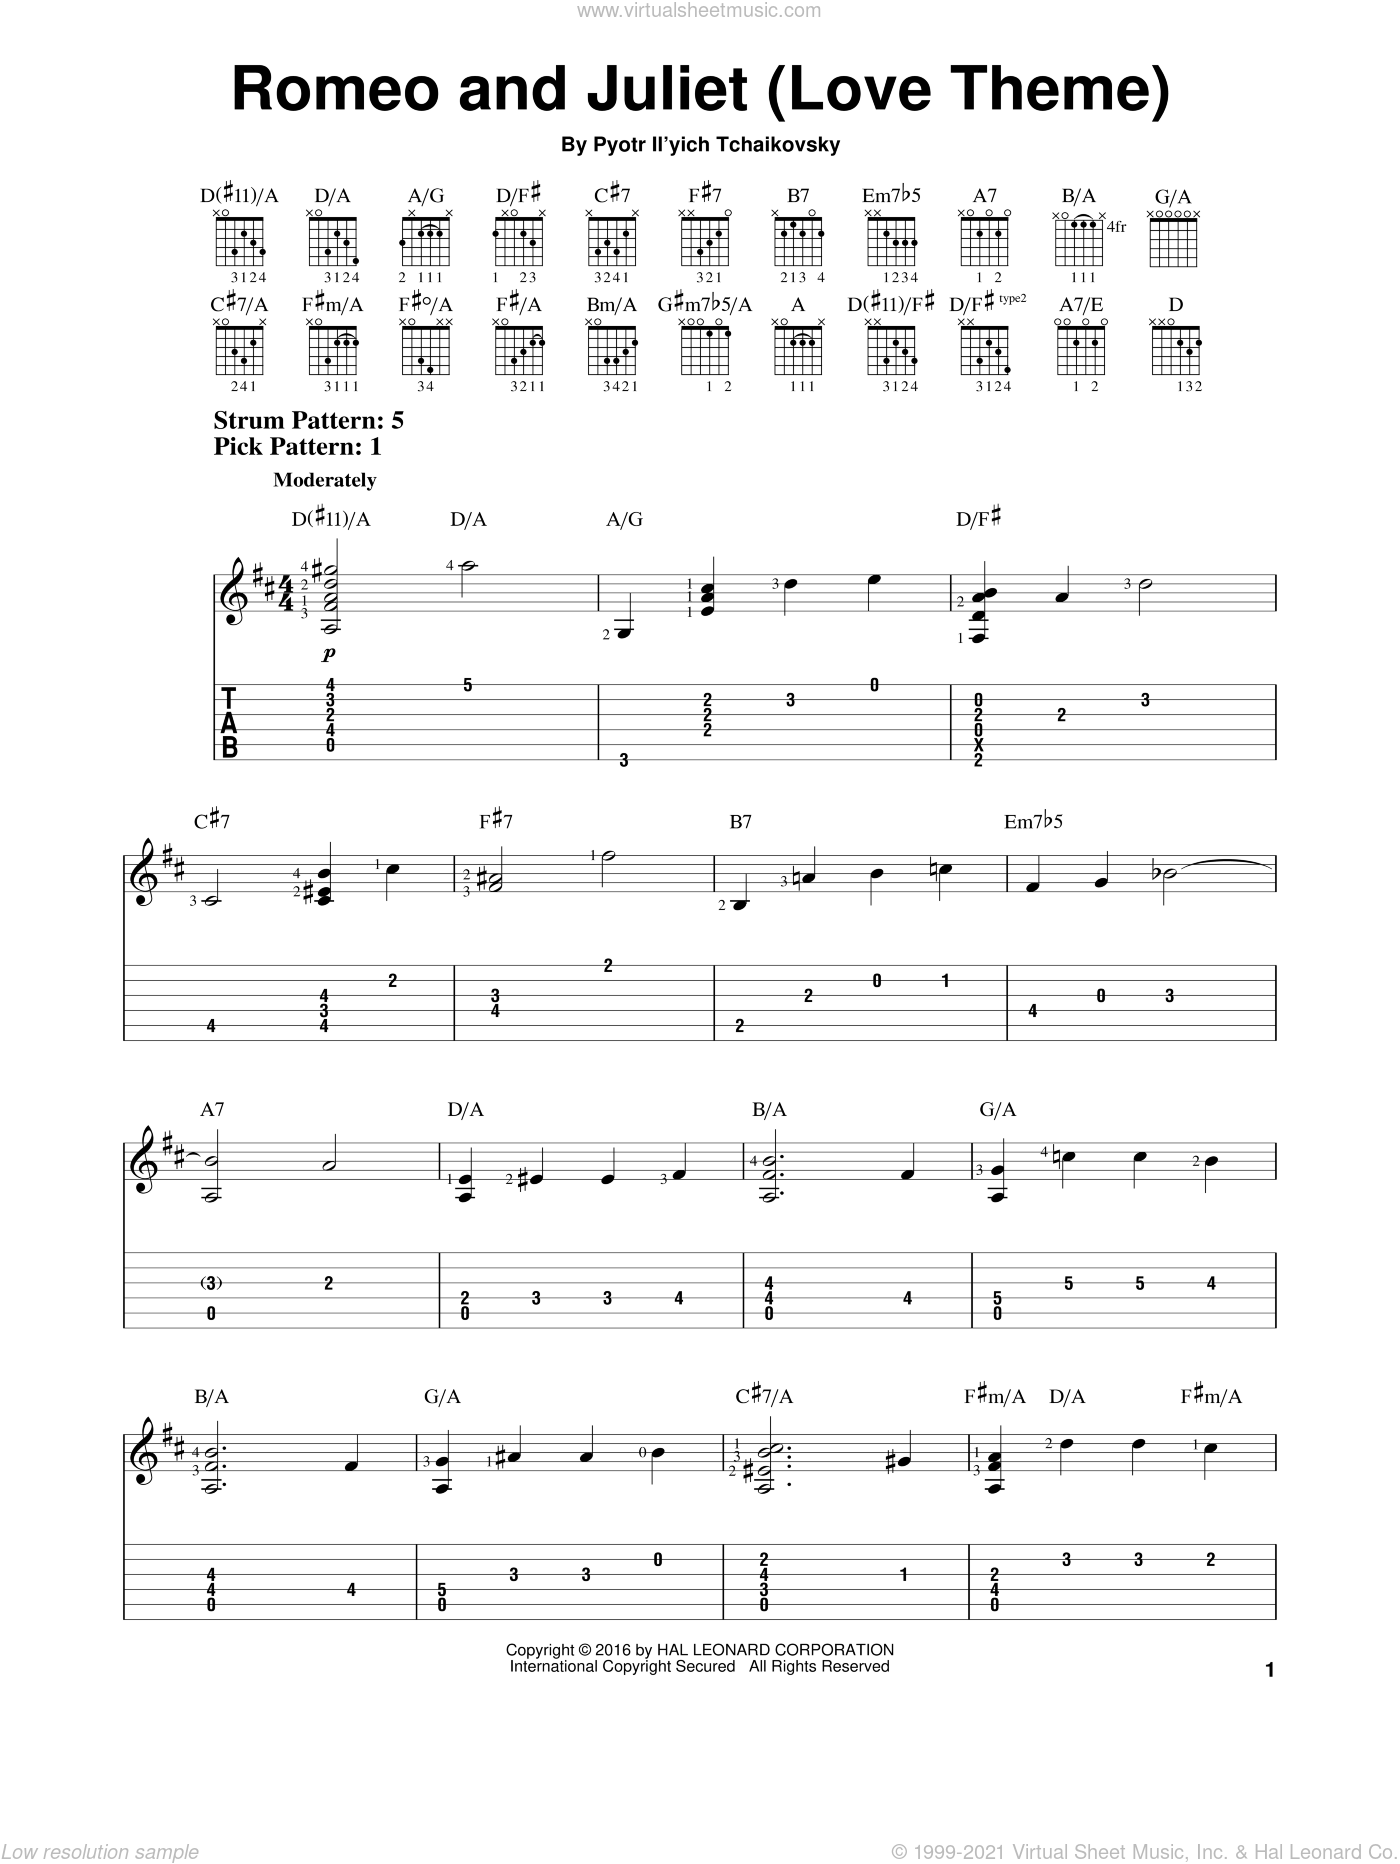 Romeo And Juliet (Love Theme) sheet music for guitar solo (easy tablature) by Pyotr Ilyich Tchaikovsky, classical score, easy guitar (easy tablature). Score Image Preview.